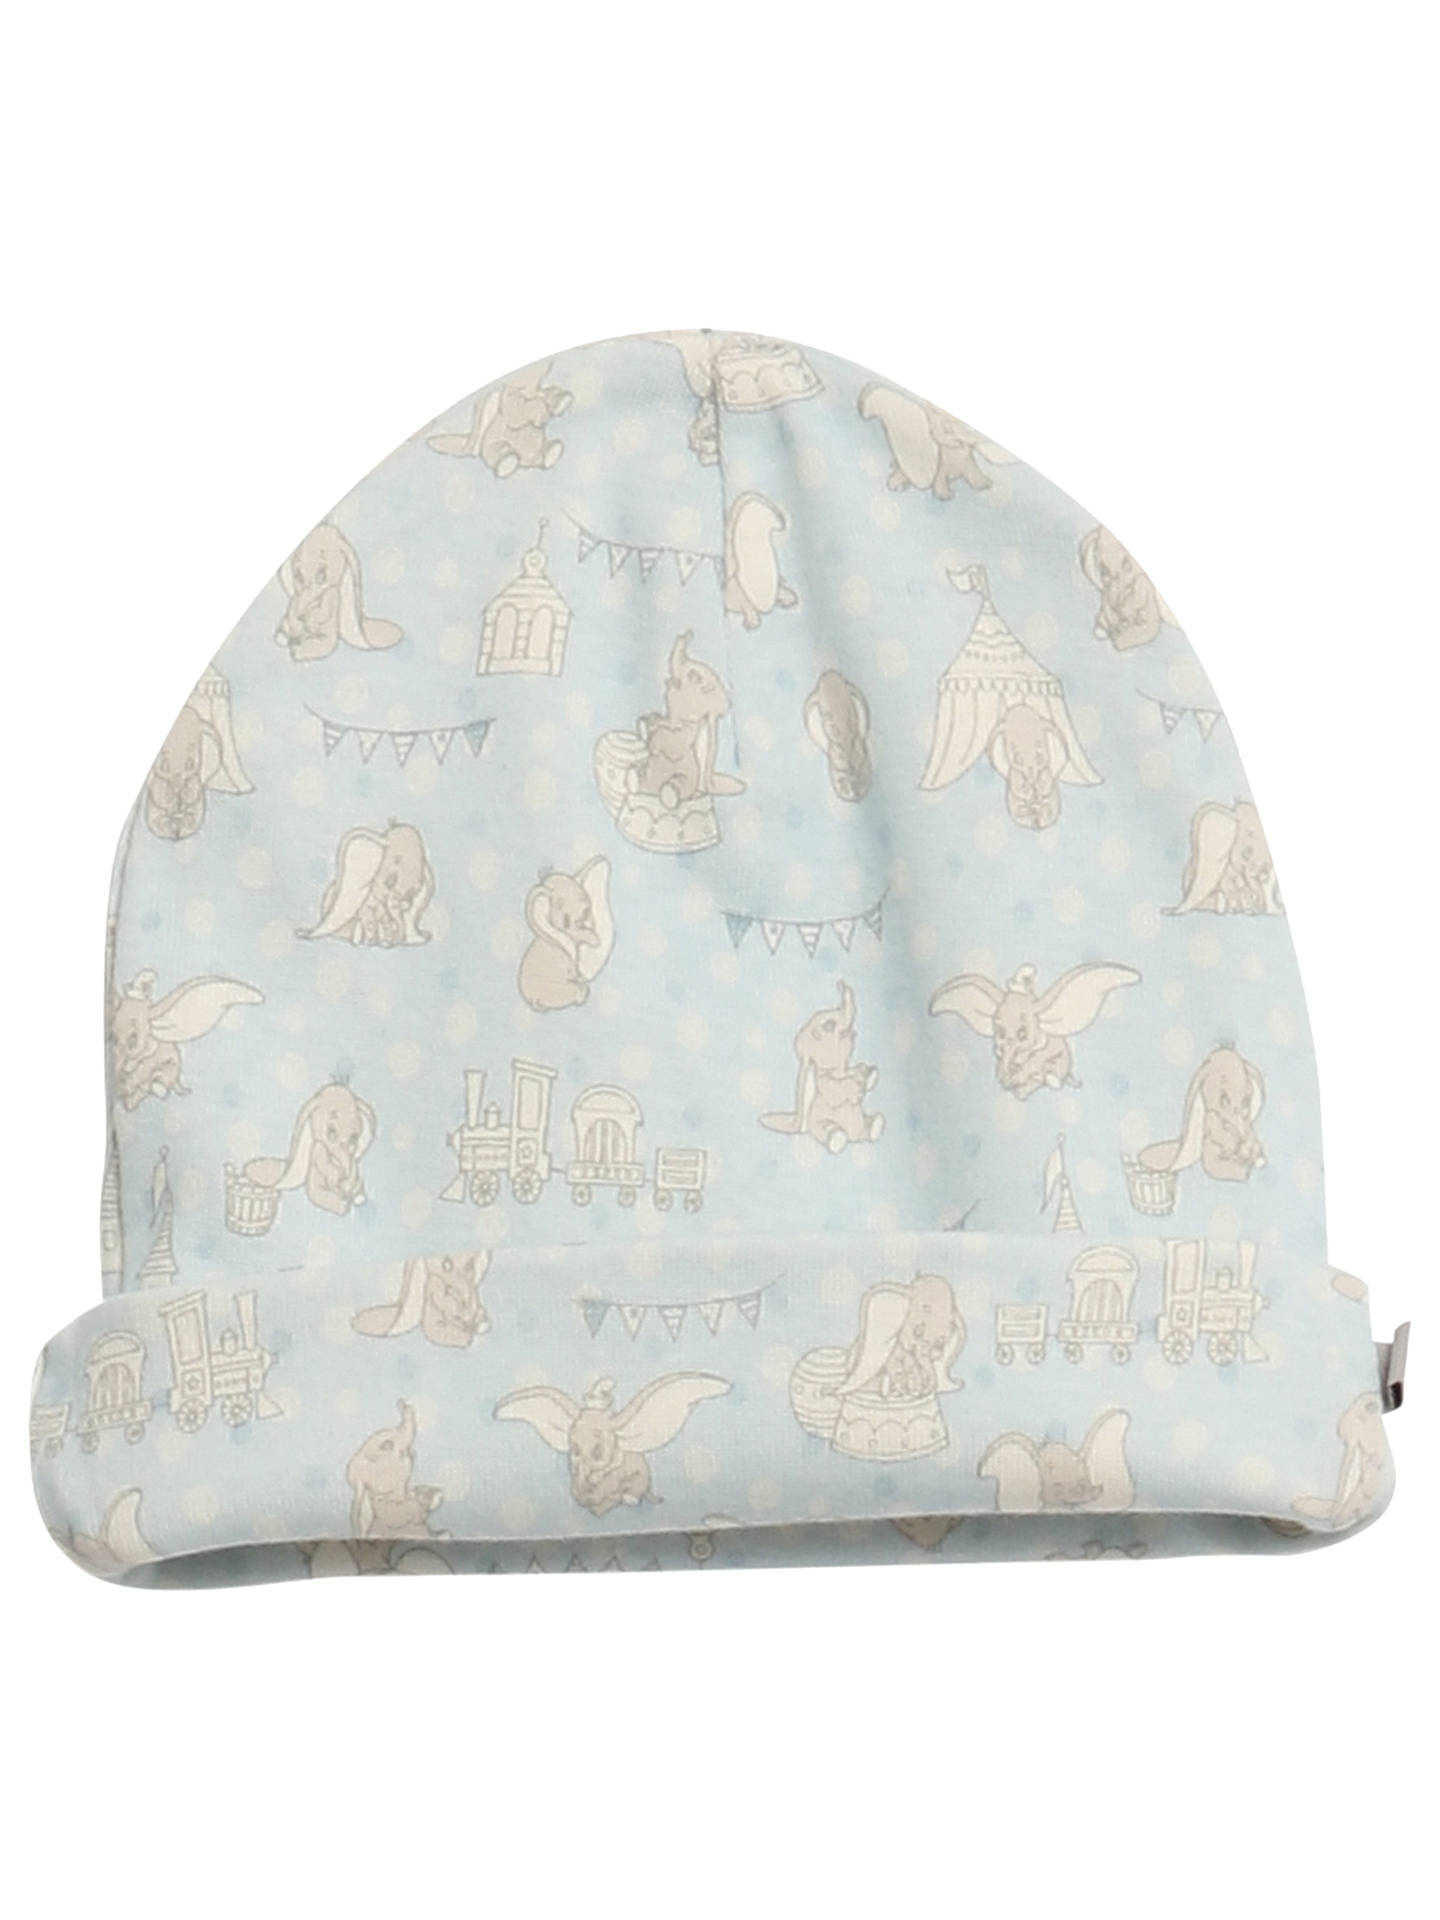 d2e7cedb733 BuyWheat Disney Baby Dumbo Beanie Hat